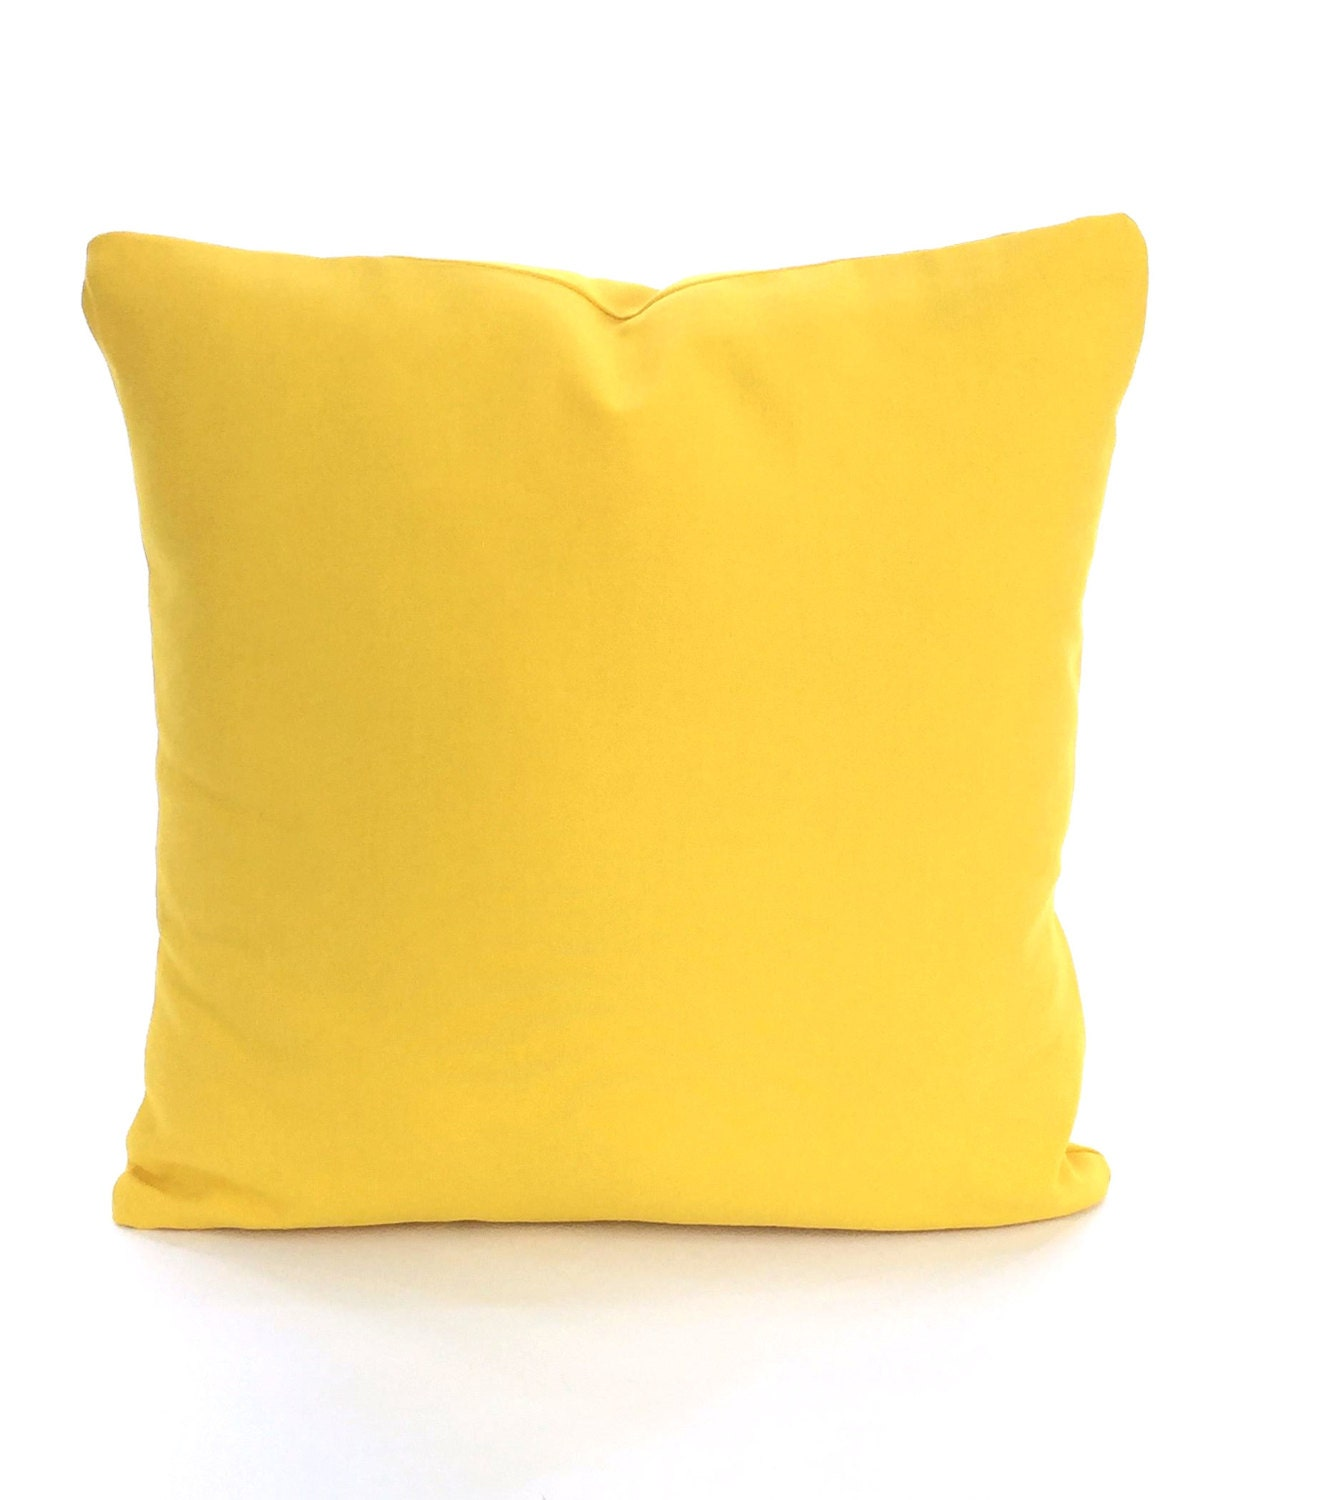 Solid Yellow Pillow Covers Decorative Throw by PillowCushionCovers